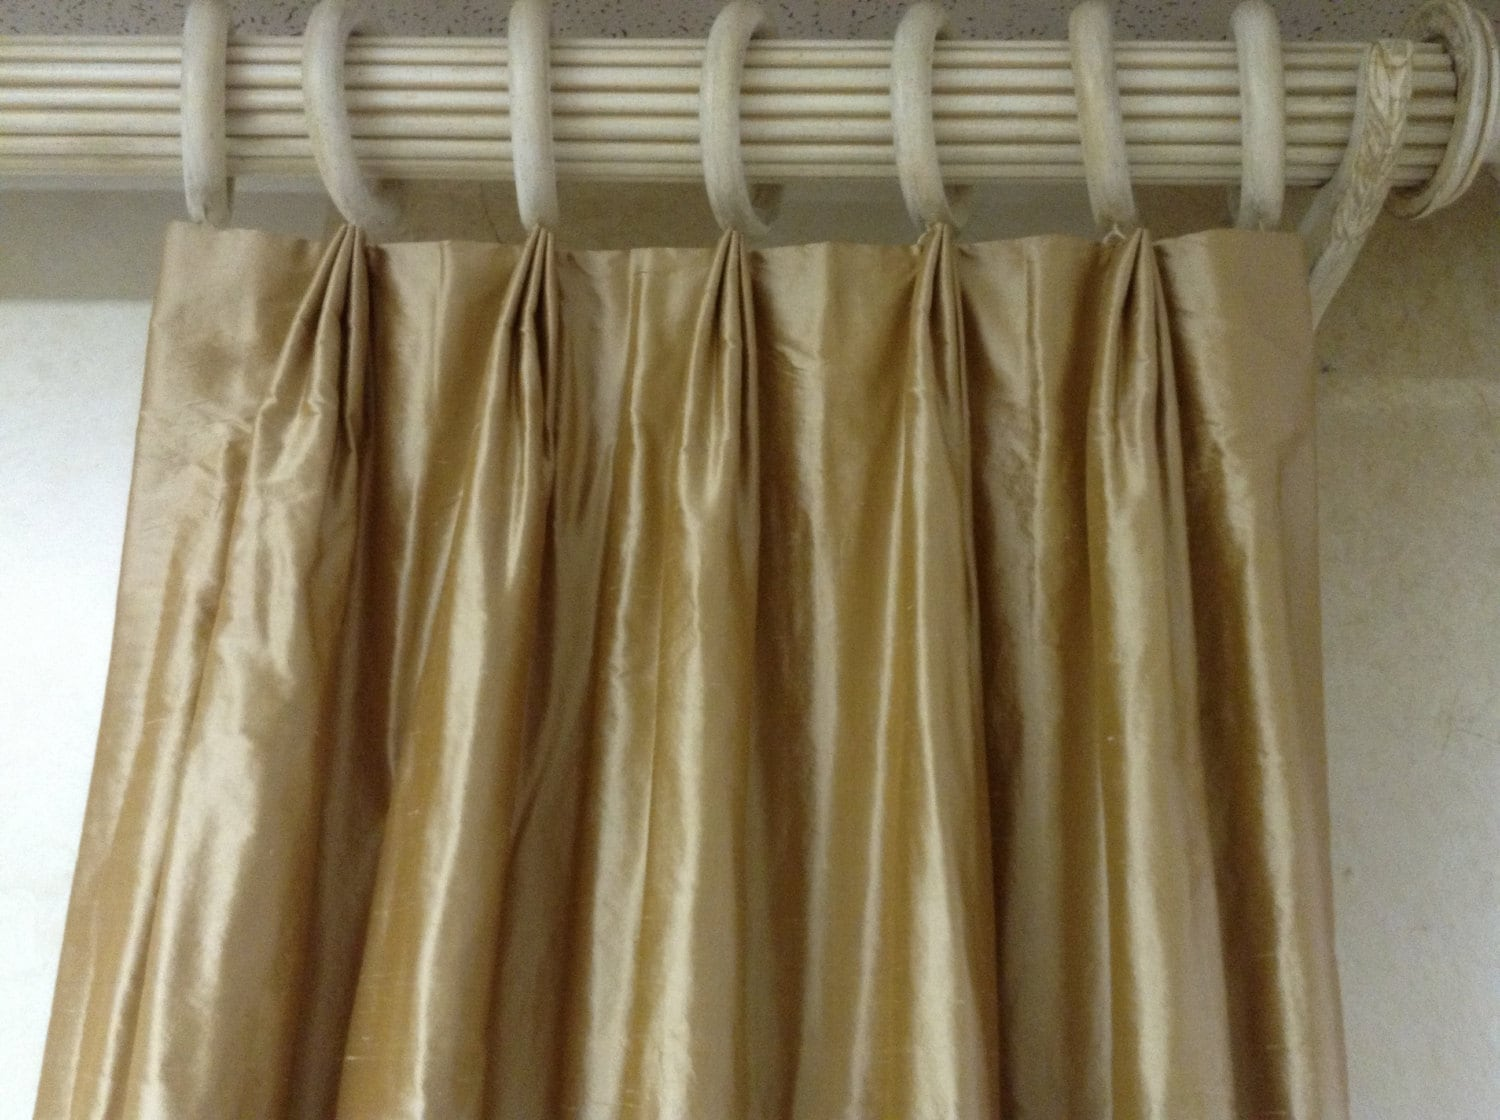 without curtains taupe p curtainswithout country jacquard valance linen custom floral curtain cotton blend linencotton